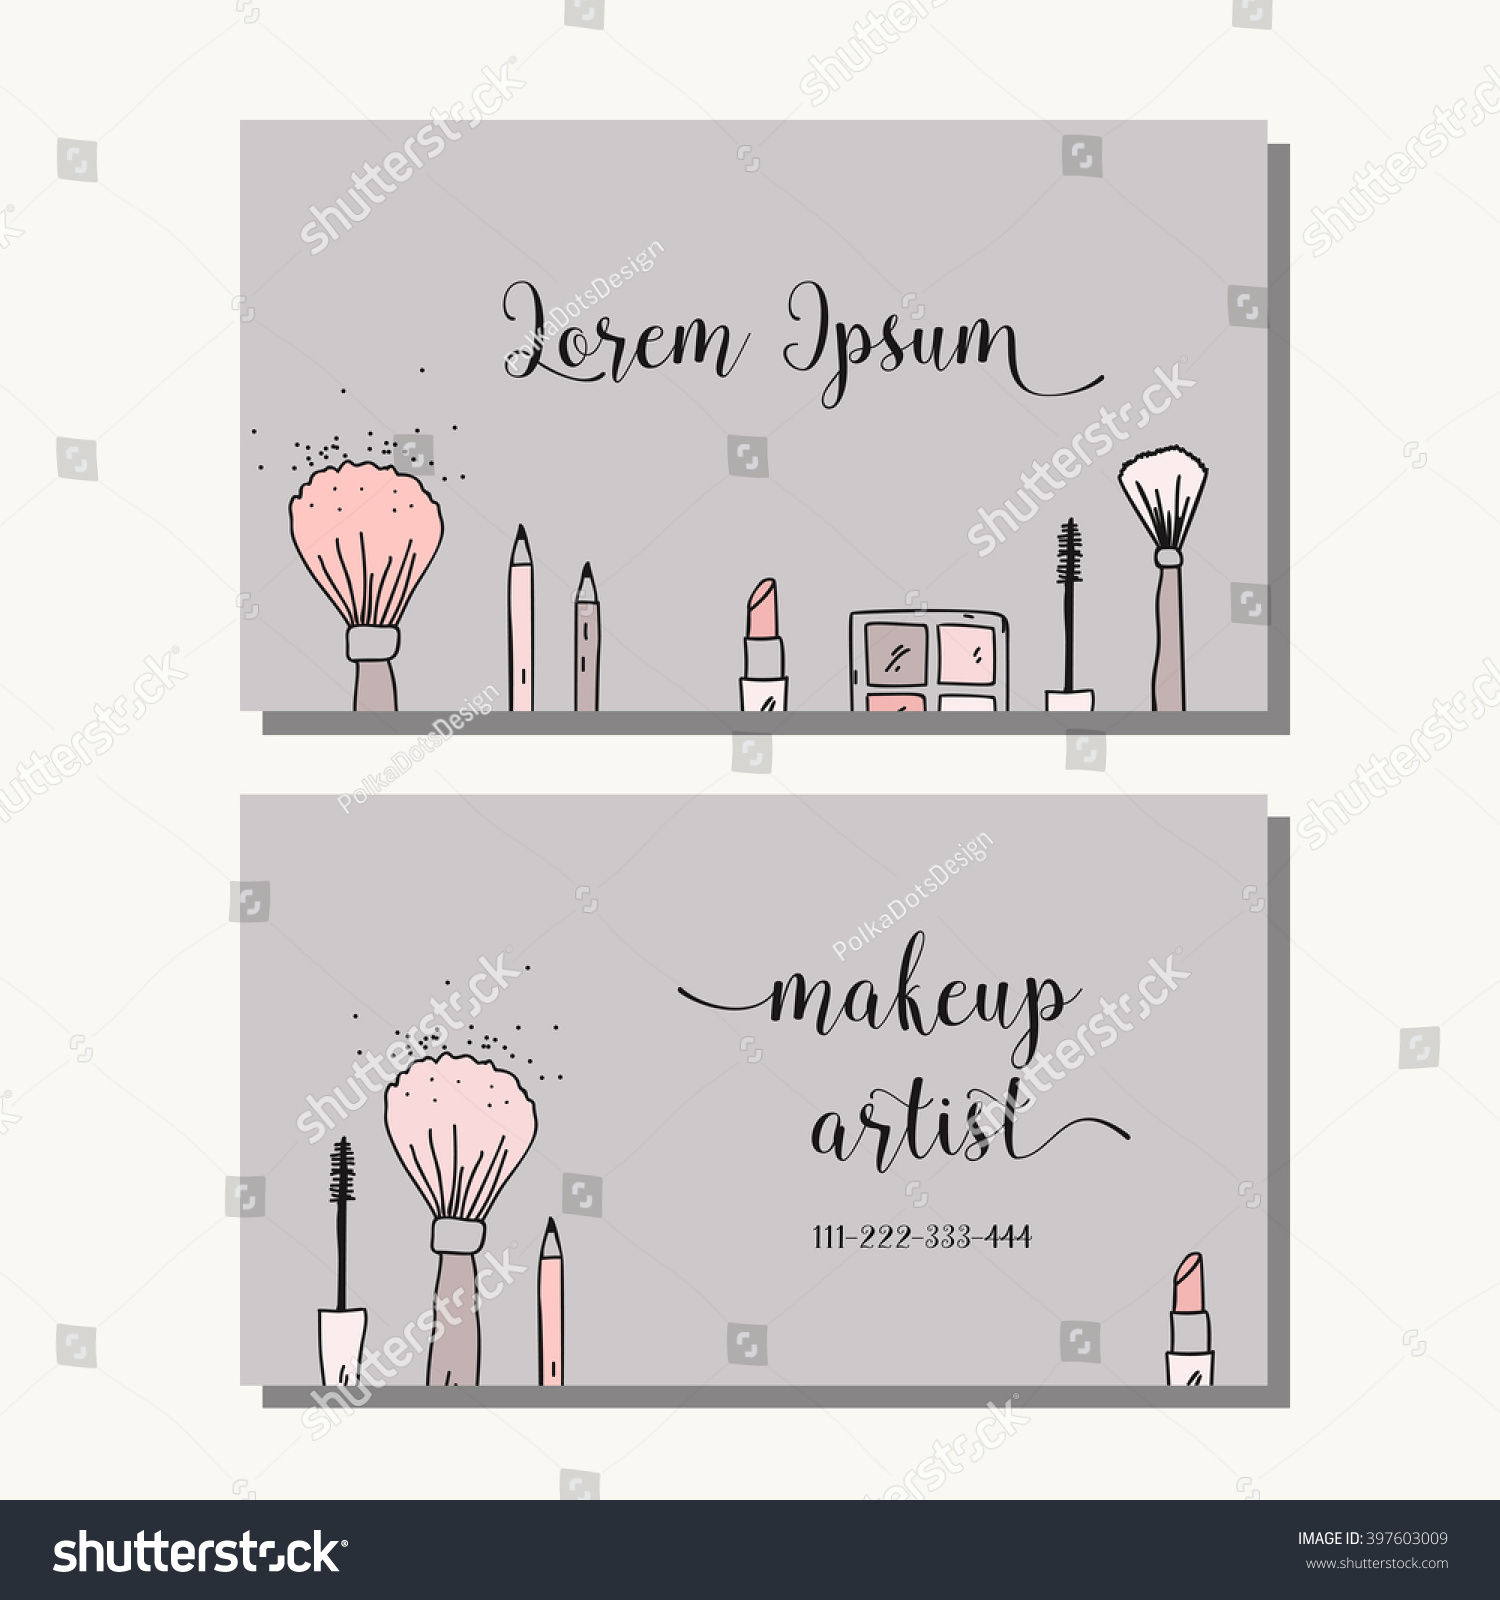 Unique Images Of Artist Business Card Template - Business Cards ...